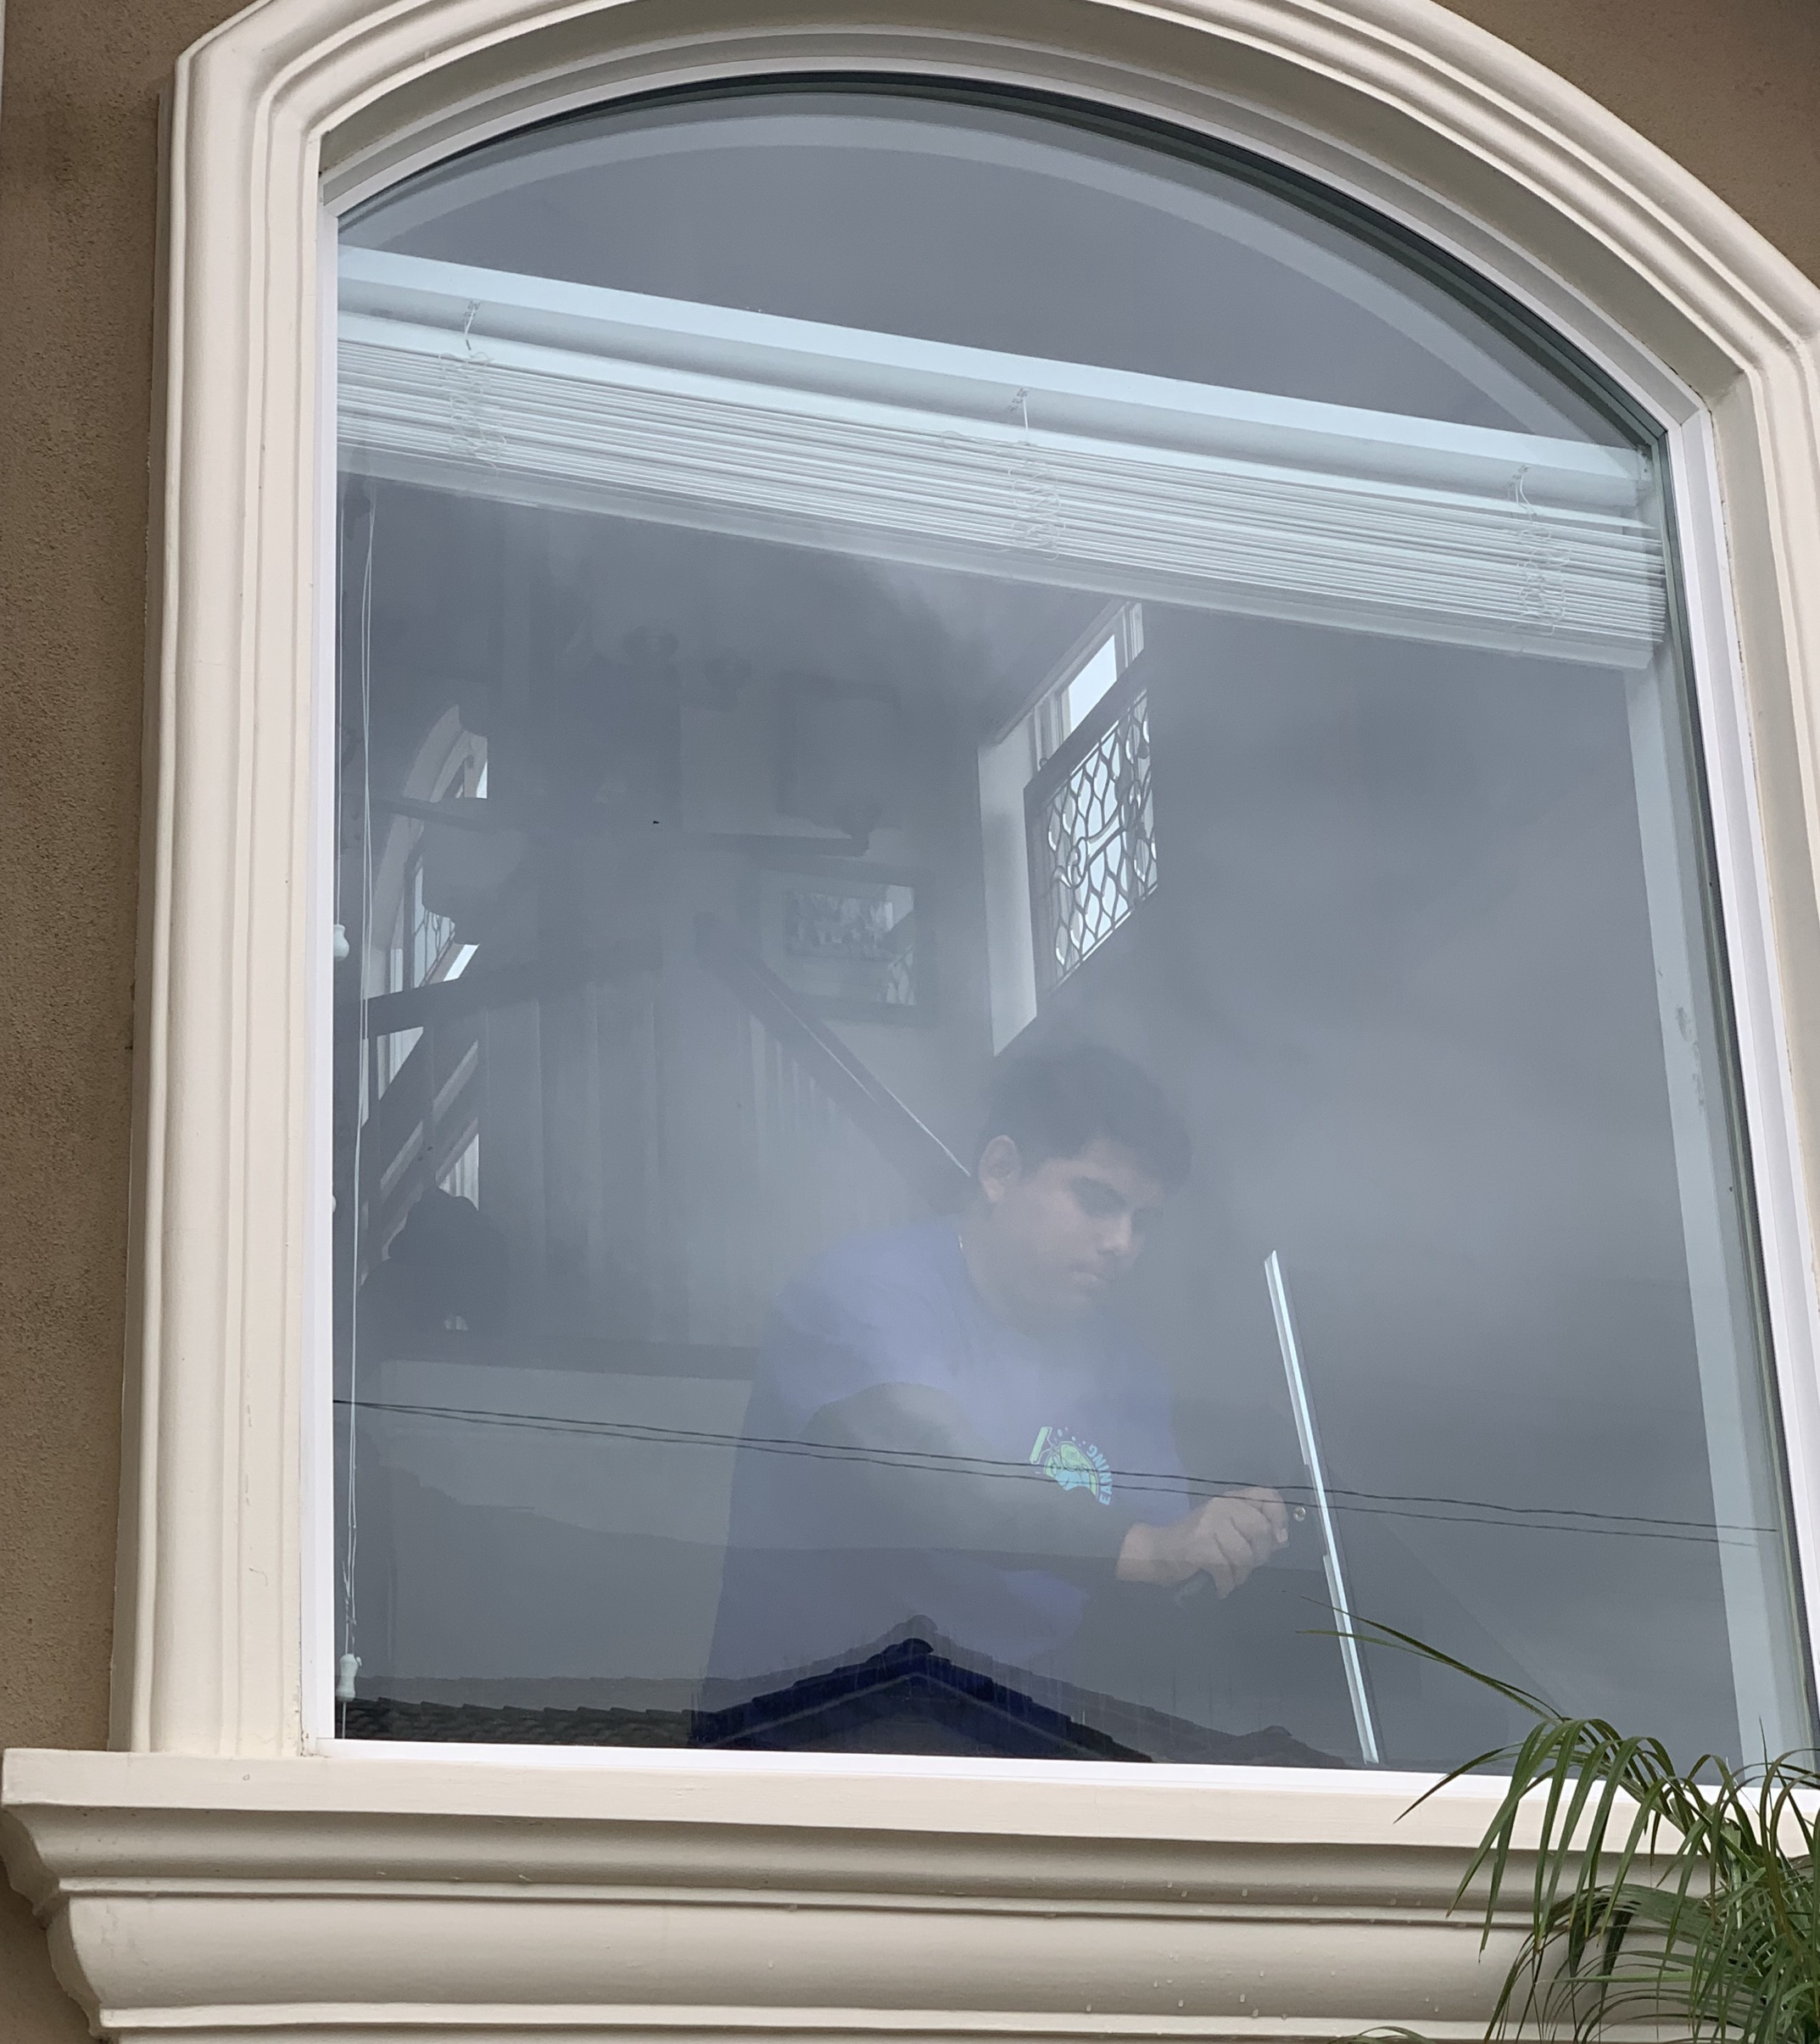 Panoramic window cleaning - by JCA